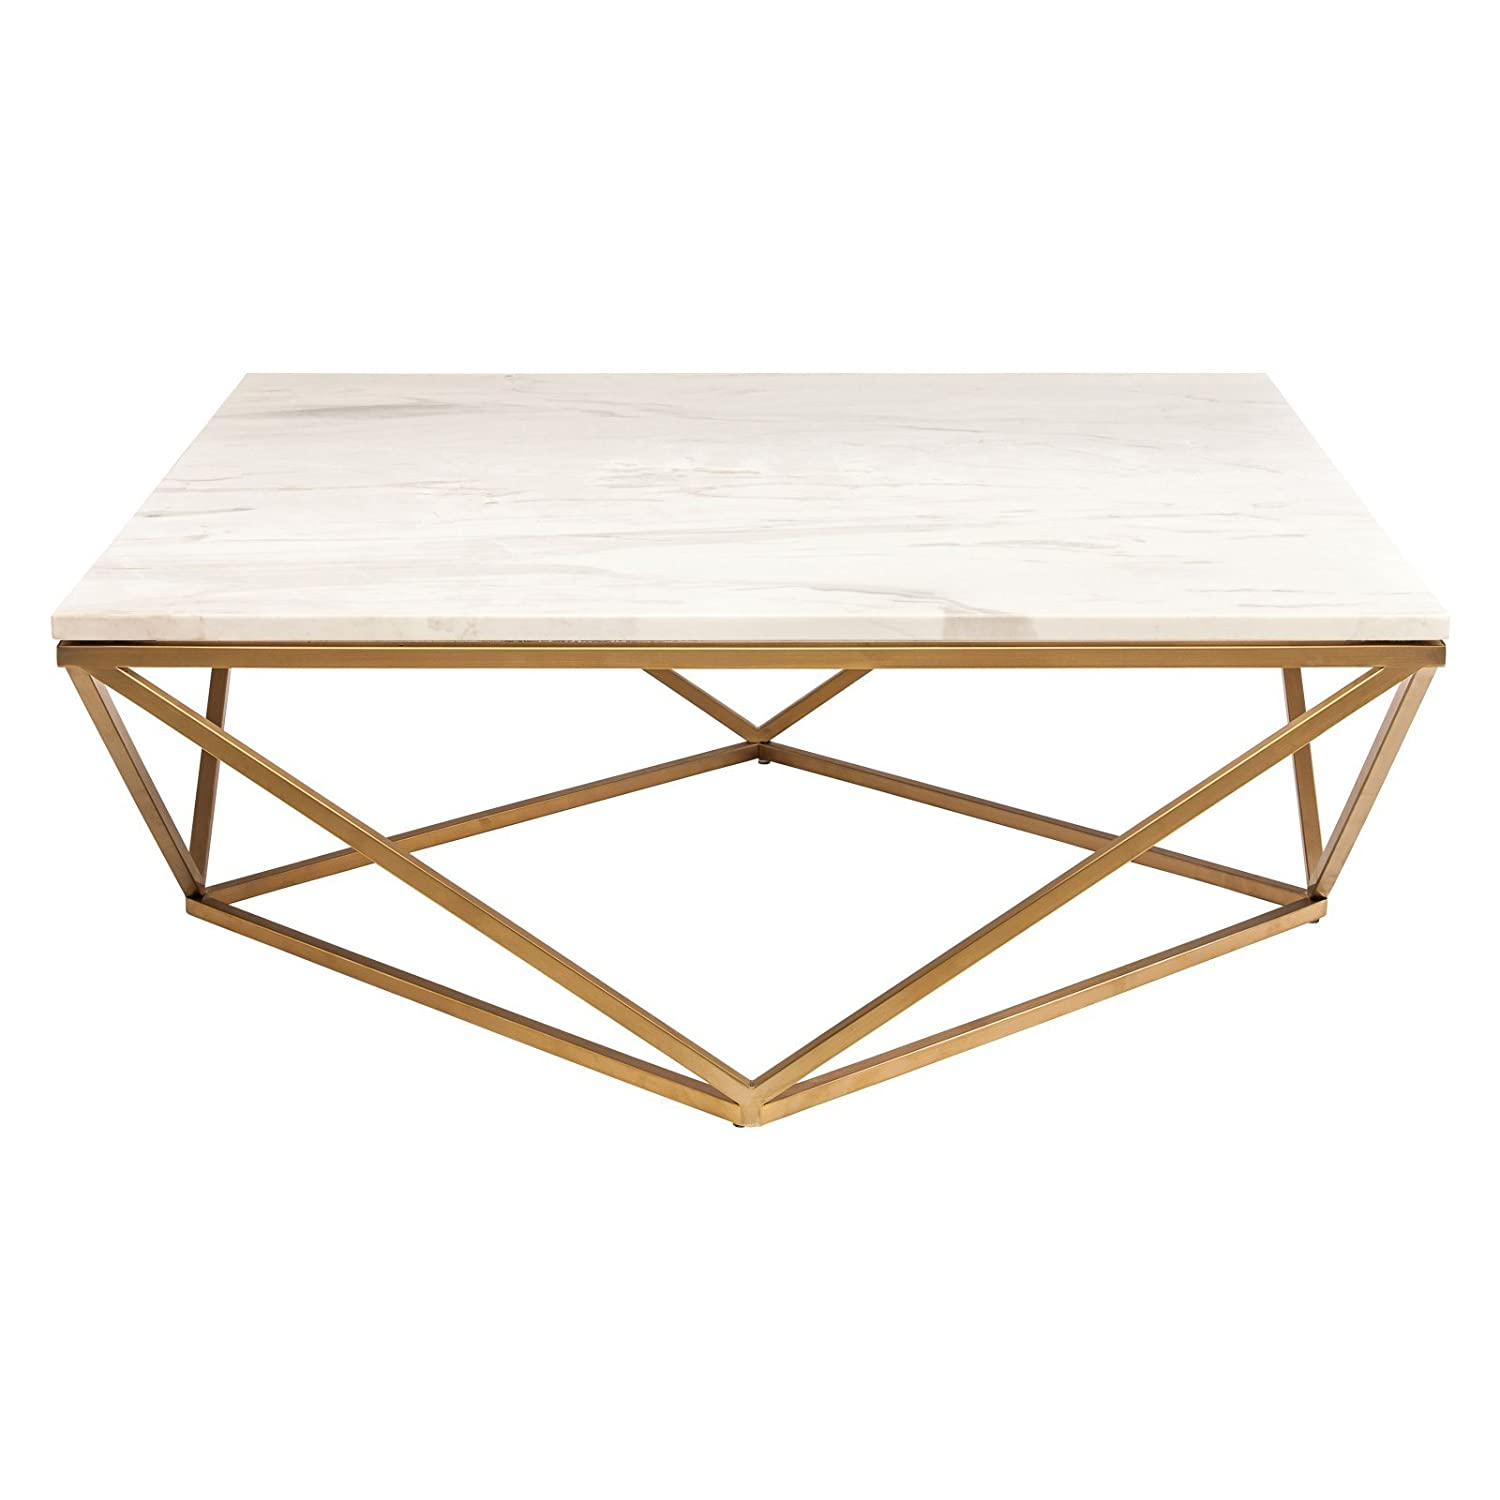 71y 6ta4GyL. SL1500  Top Result 50 Best Of Gold and Glass Coffee Table Image 2017 Ksh4